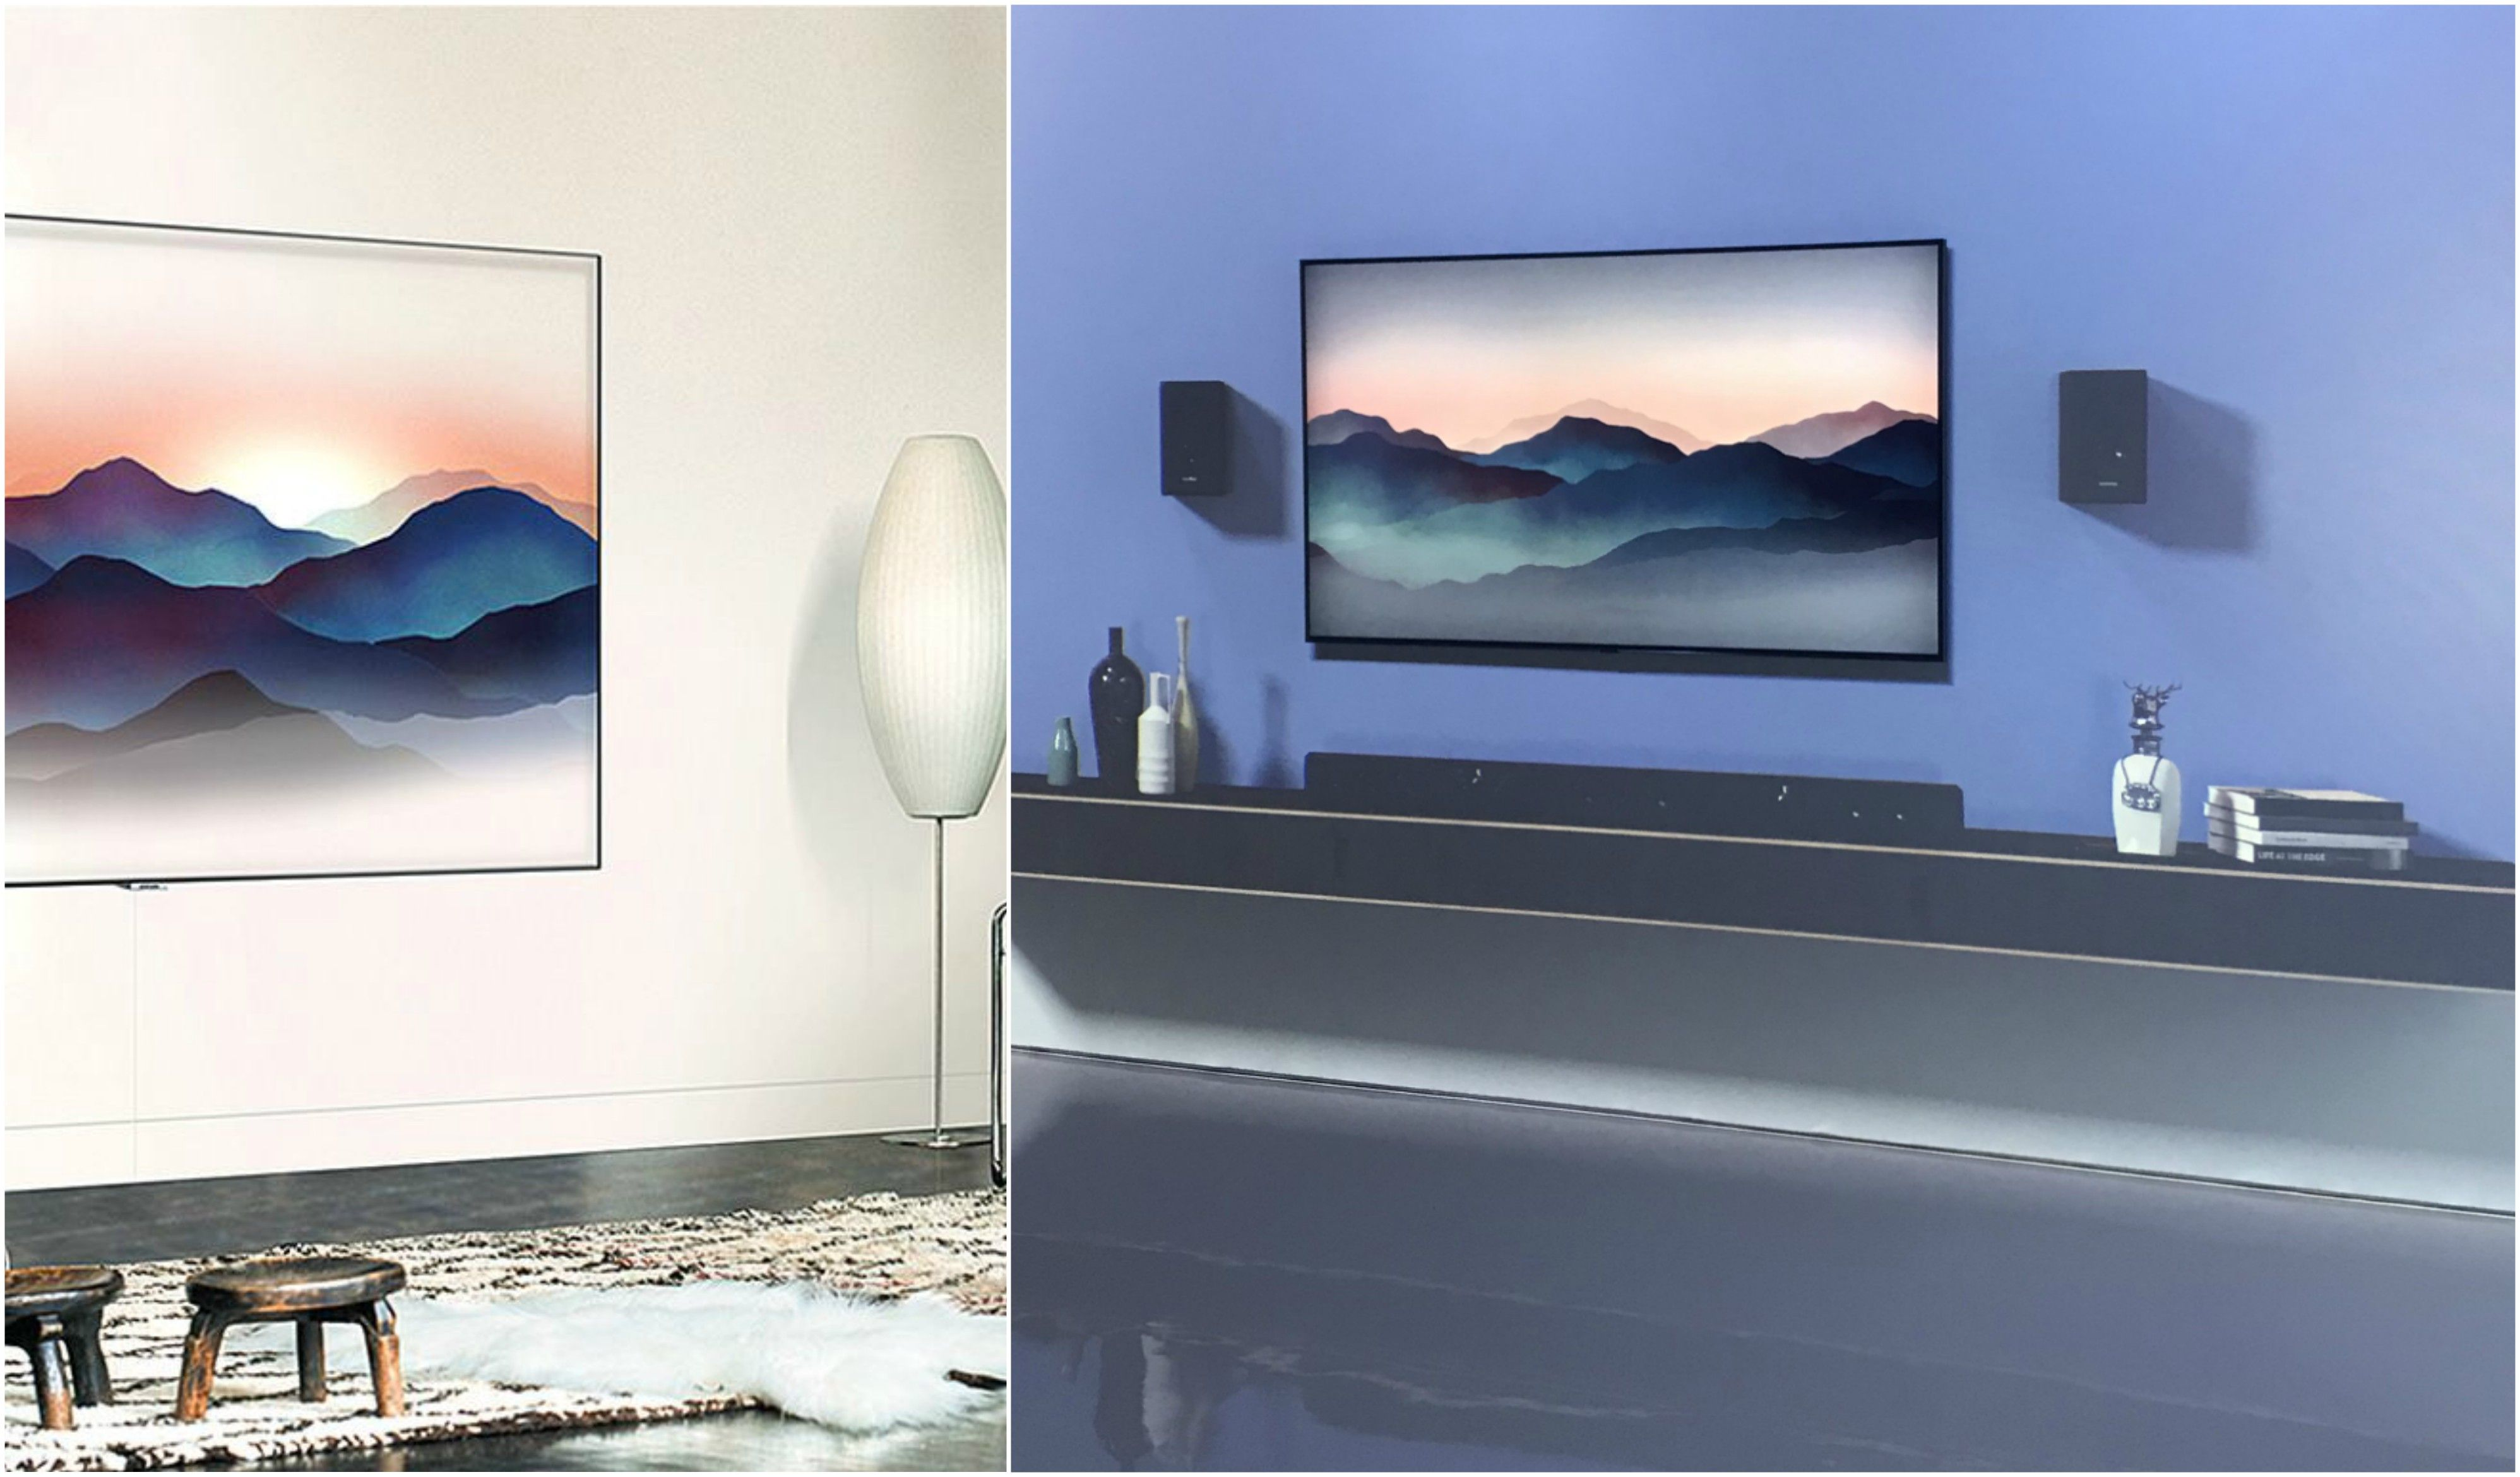 Samsung Qled Tv New Model Blends In With Your Wallpaper